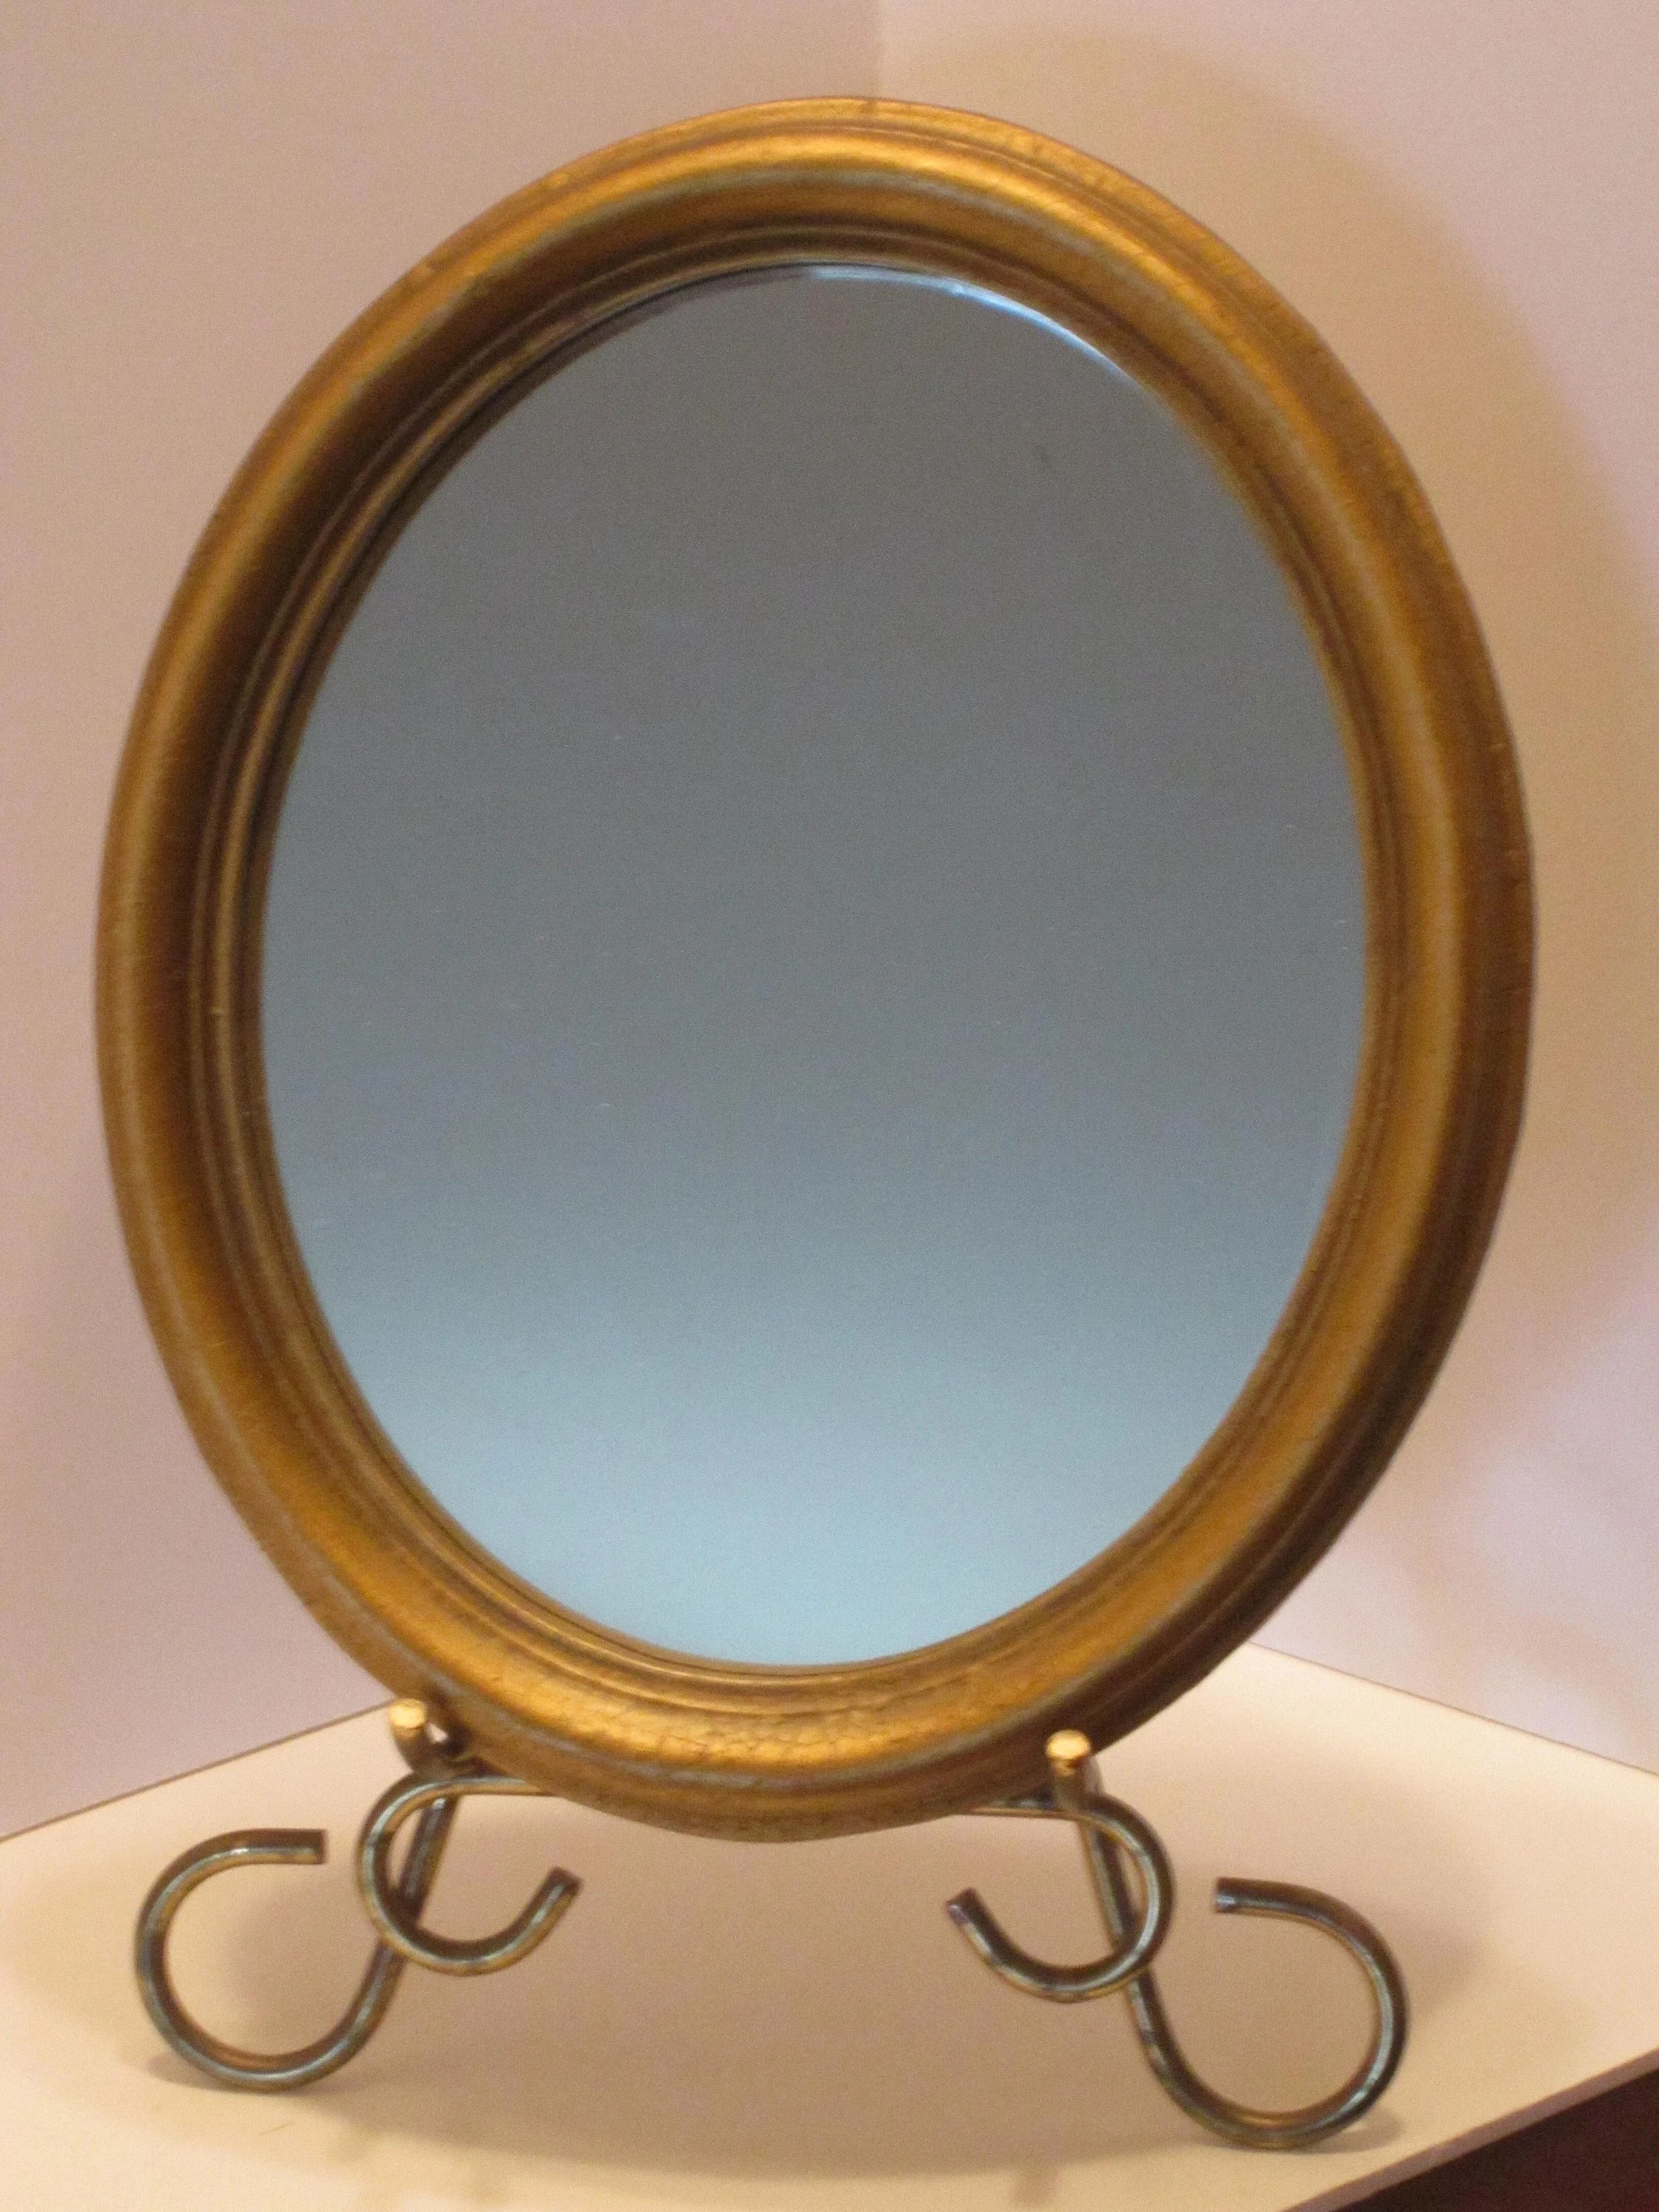 Oval Mirror Wood Frame Antique Gold Framed Oval Mirror Faux Wood Frame With Oval Mirror Home Wall Decor 1970s Decor Hollywood Regency